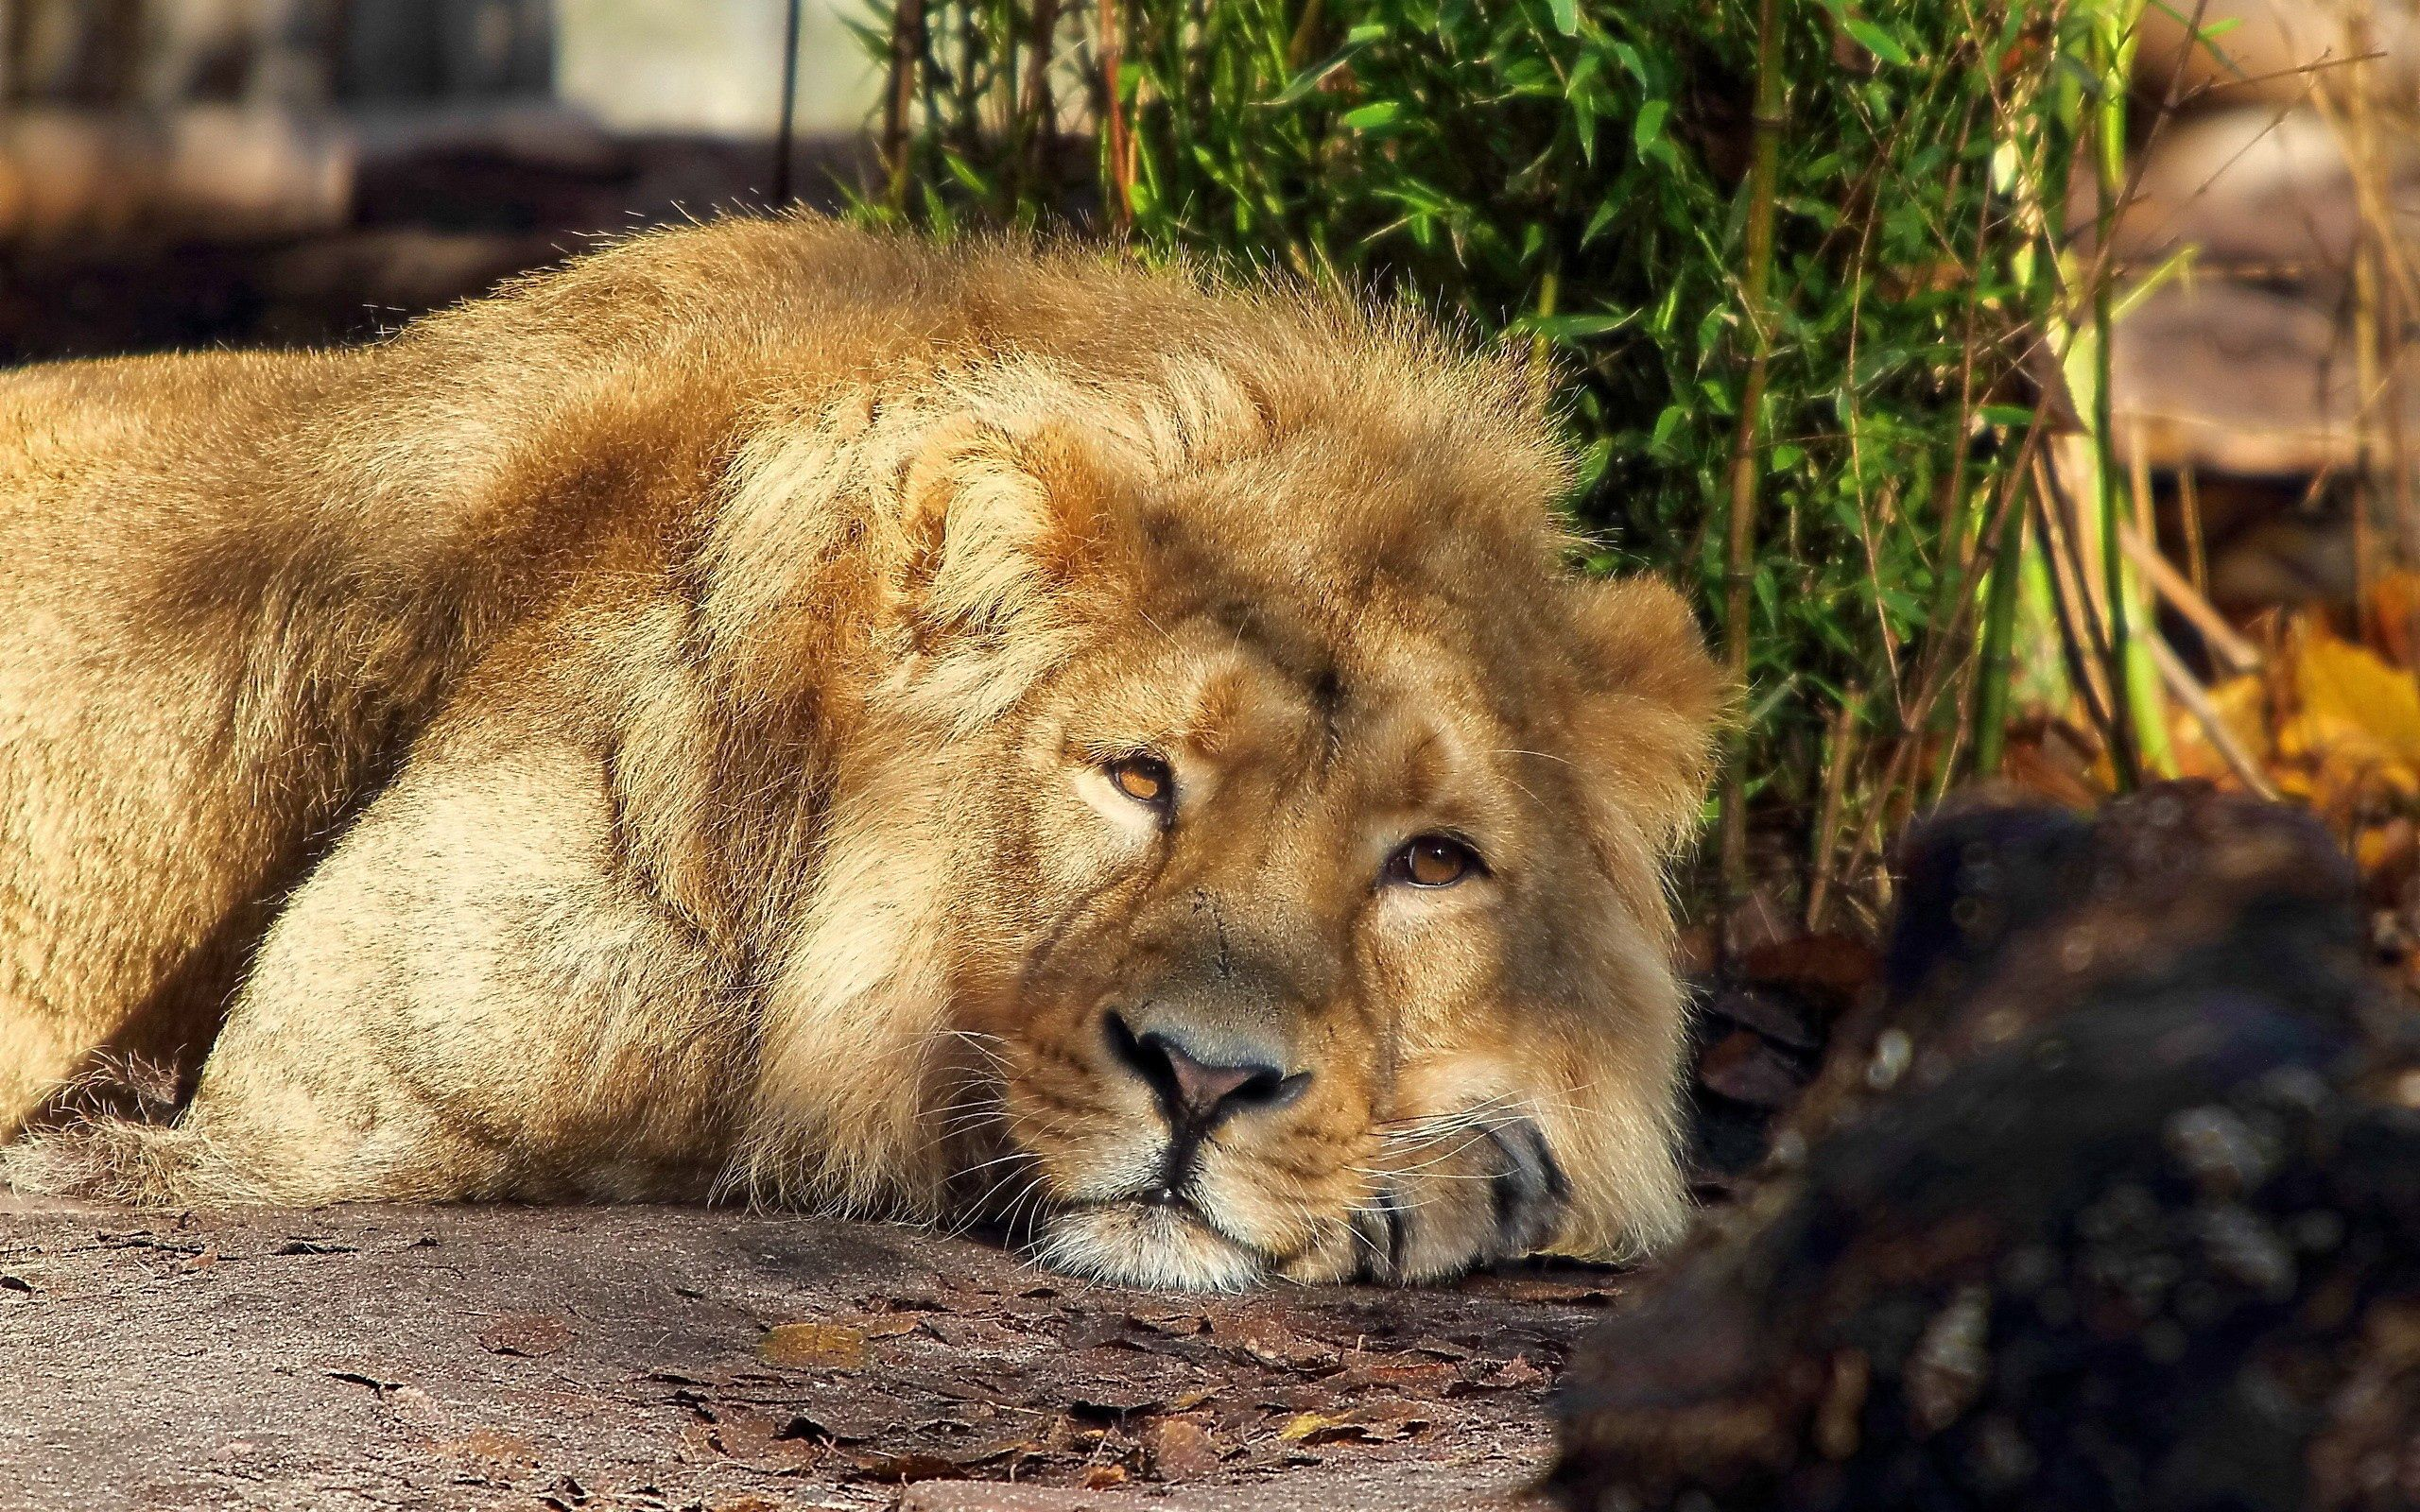 126811 download wallpaper Animals, Lion, Sleep, Dream, King Of Beasts, King Of The Beasts, Mane screensavers and pictures for free